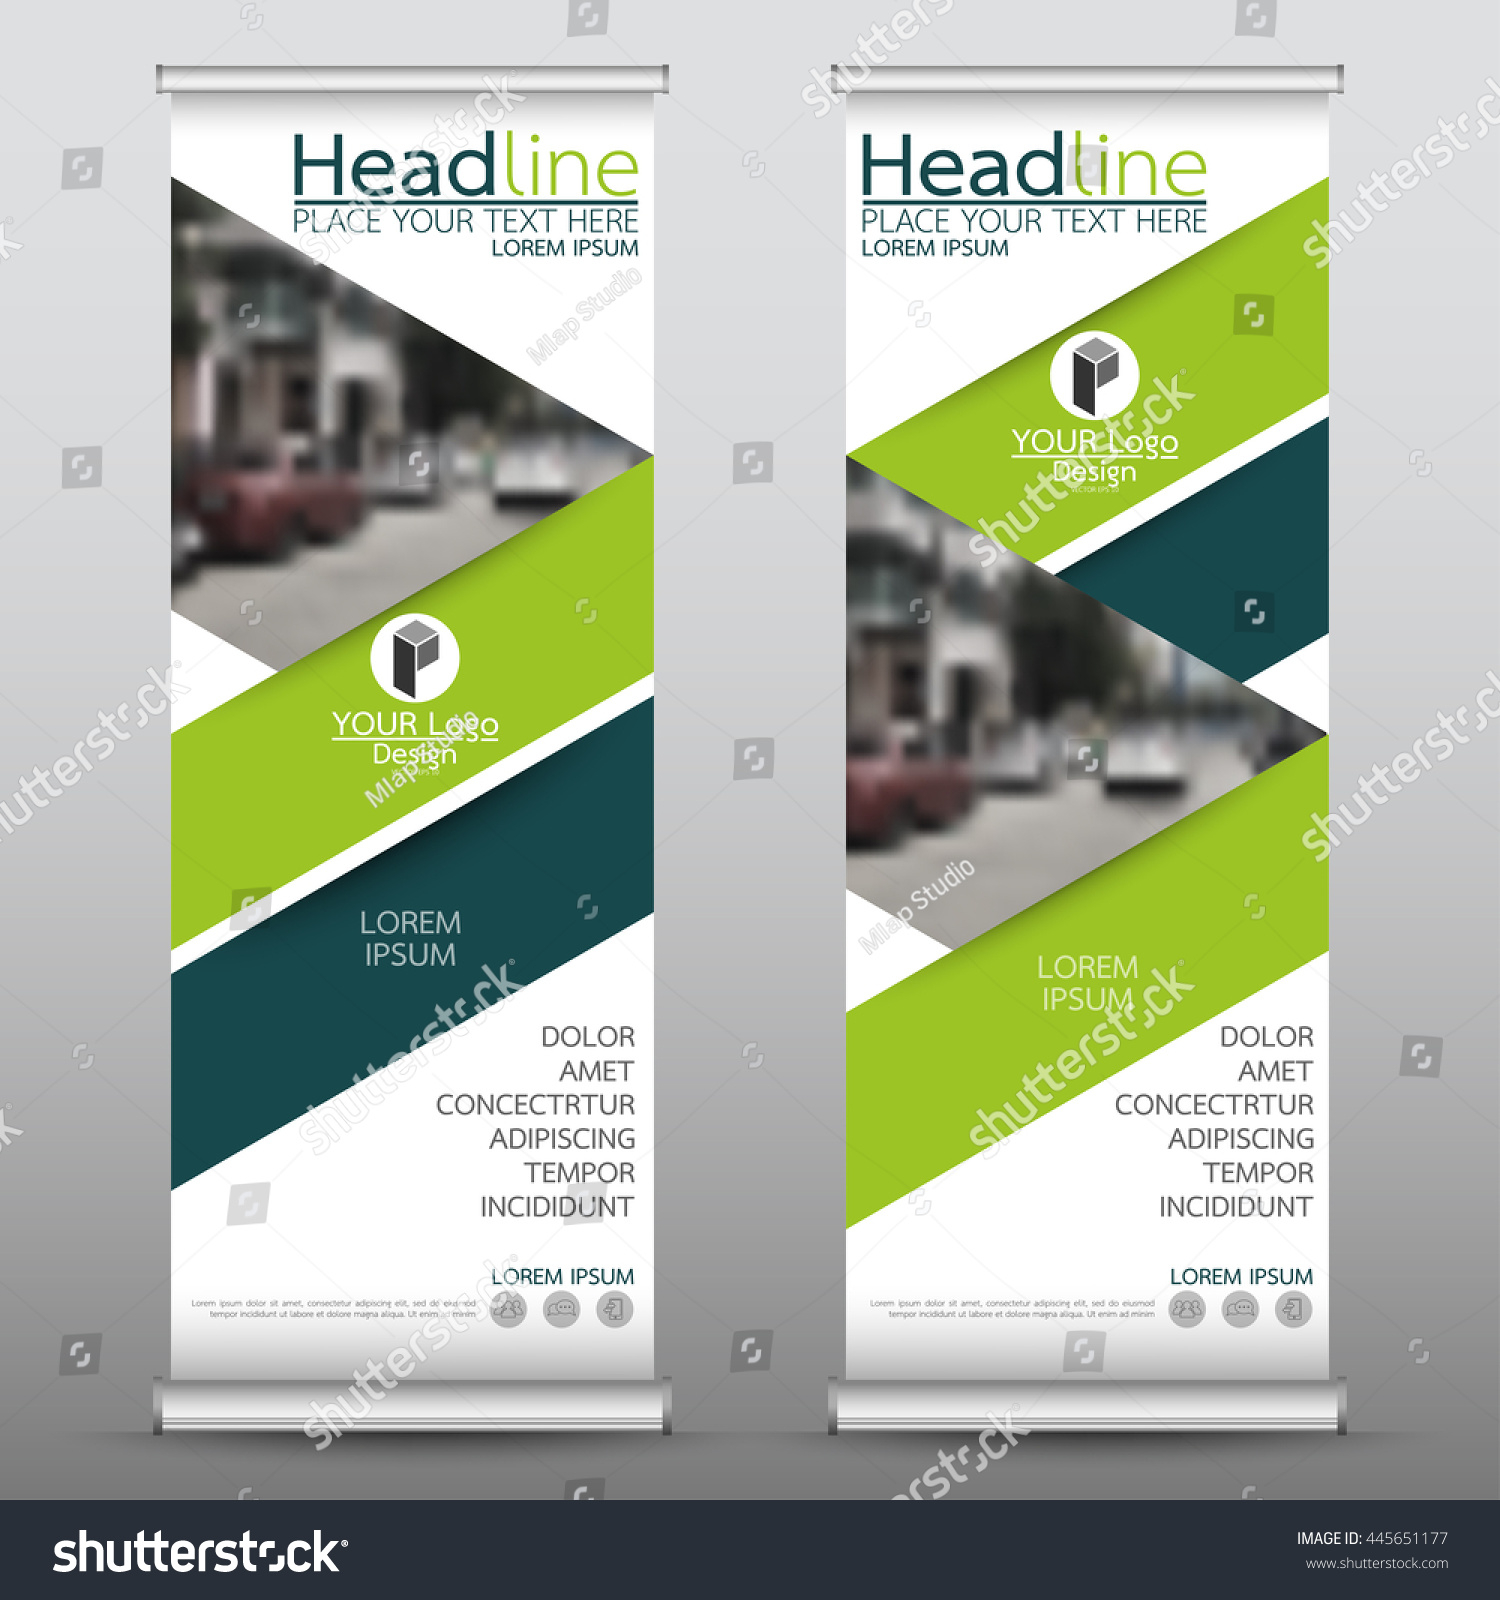 Green roll up business brochure flyer banner design vertical template - Green Roll Up Business Brochure Flyer Banner Design Vertical Template Vector Cover Presentation Abstract Geometric